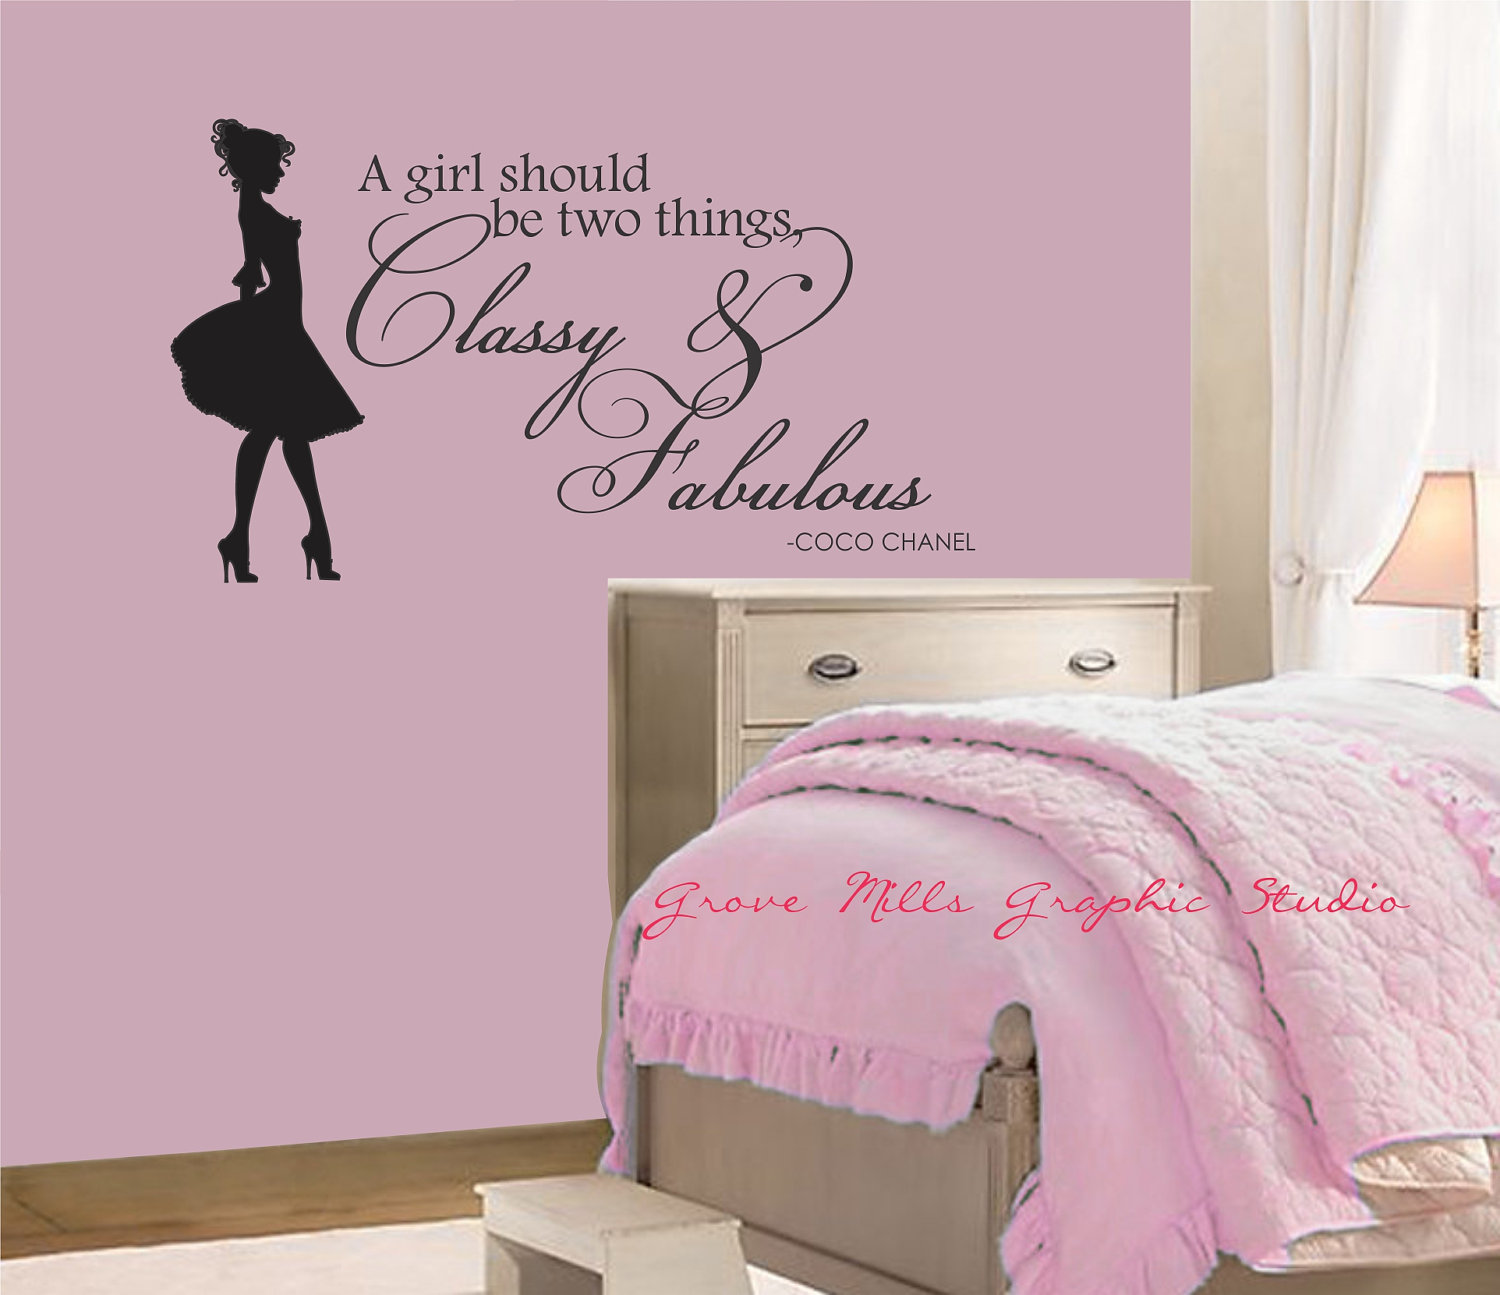 Fascinating Wall Stickers For Bedrooms Of Classy And Decal Coco Chanel Quote